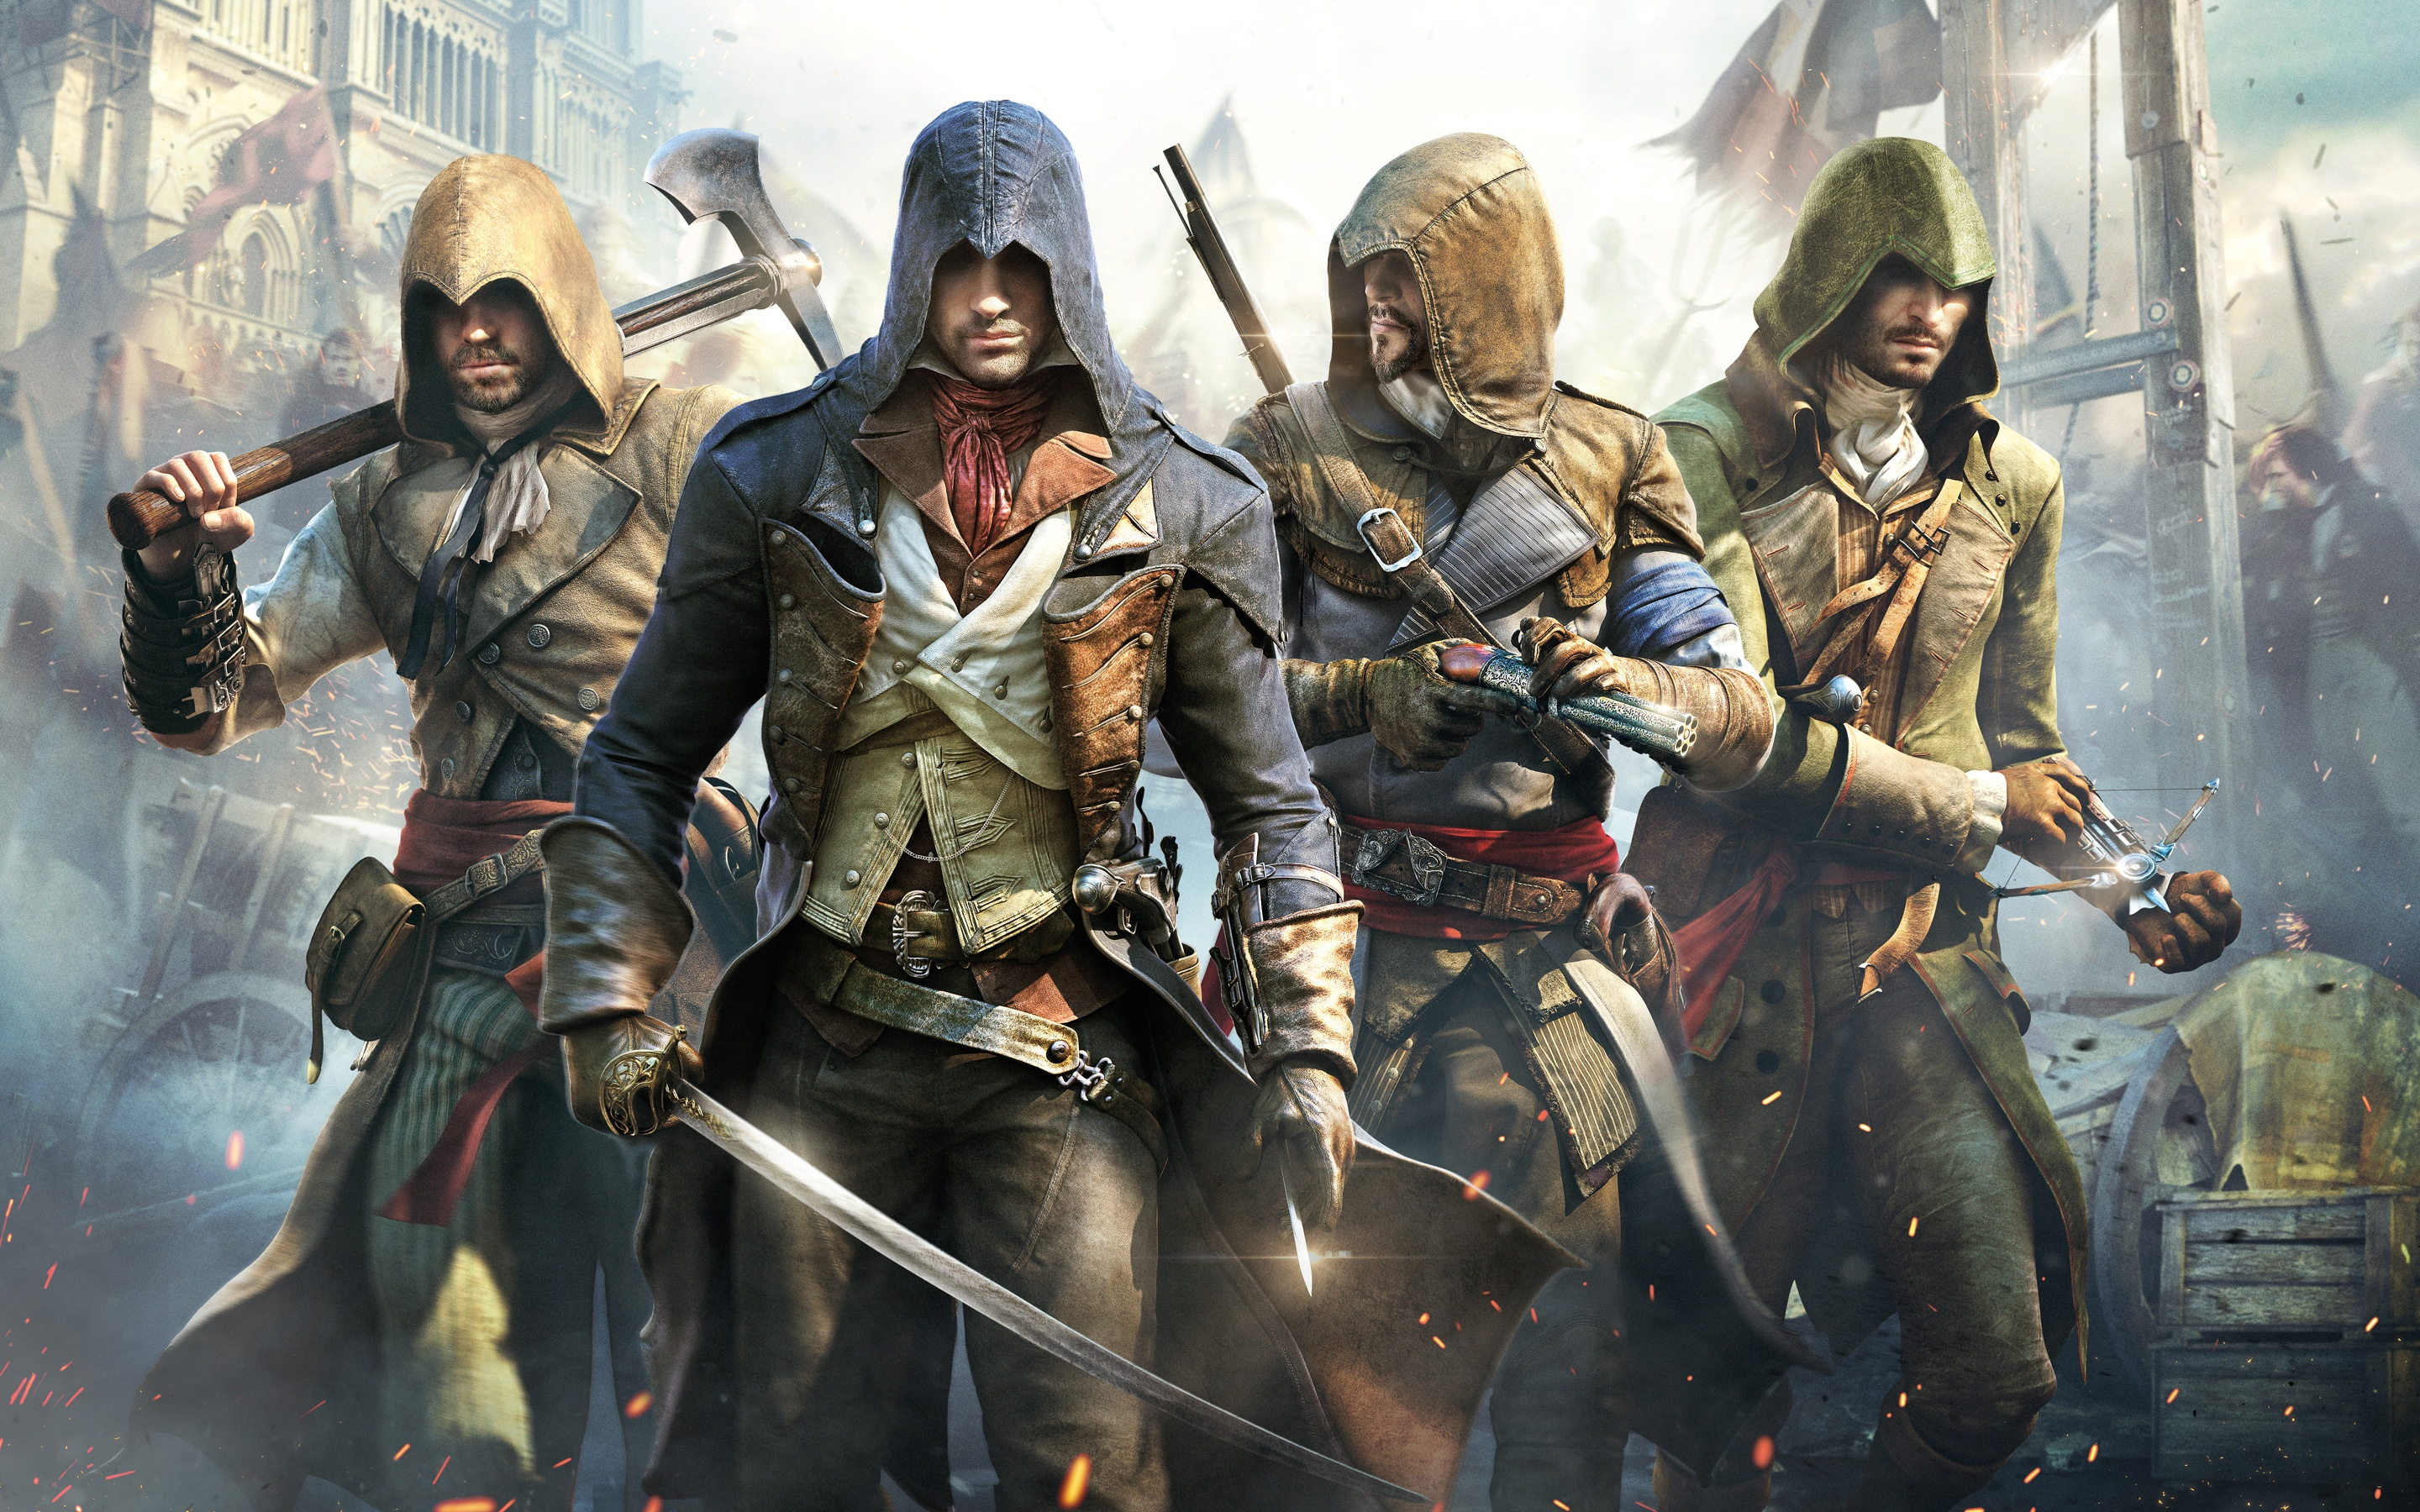 Assassin S Creed Unity Poster Wallpapers In Jpg Format For Free